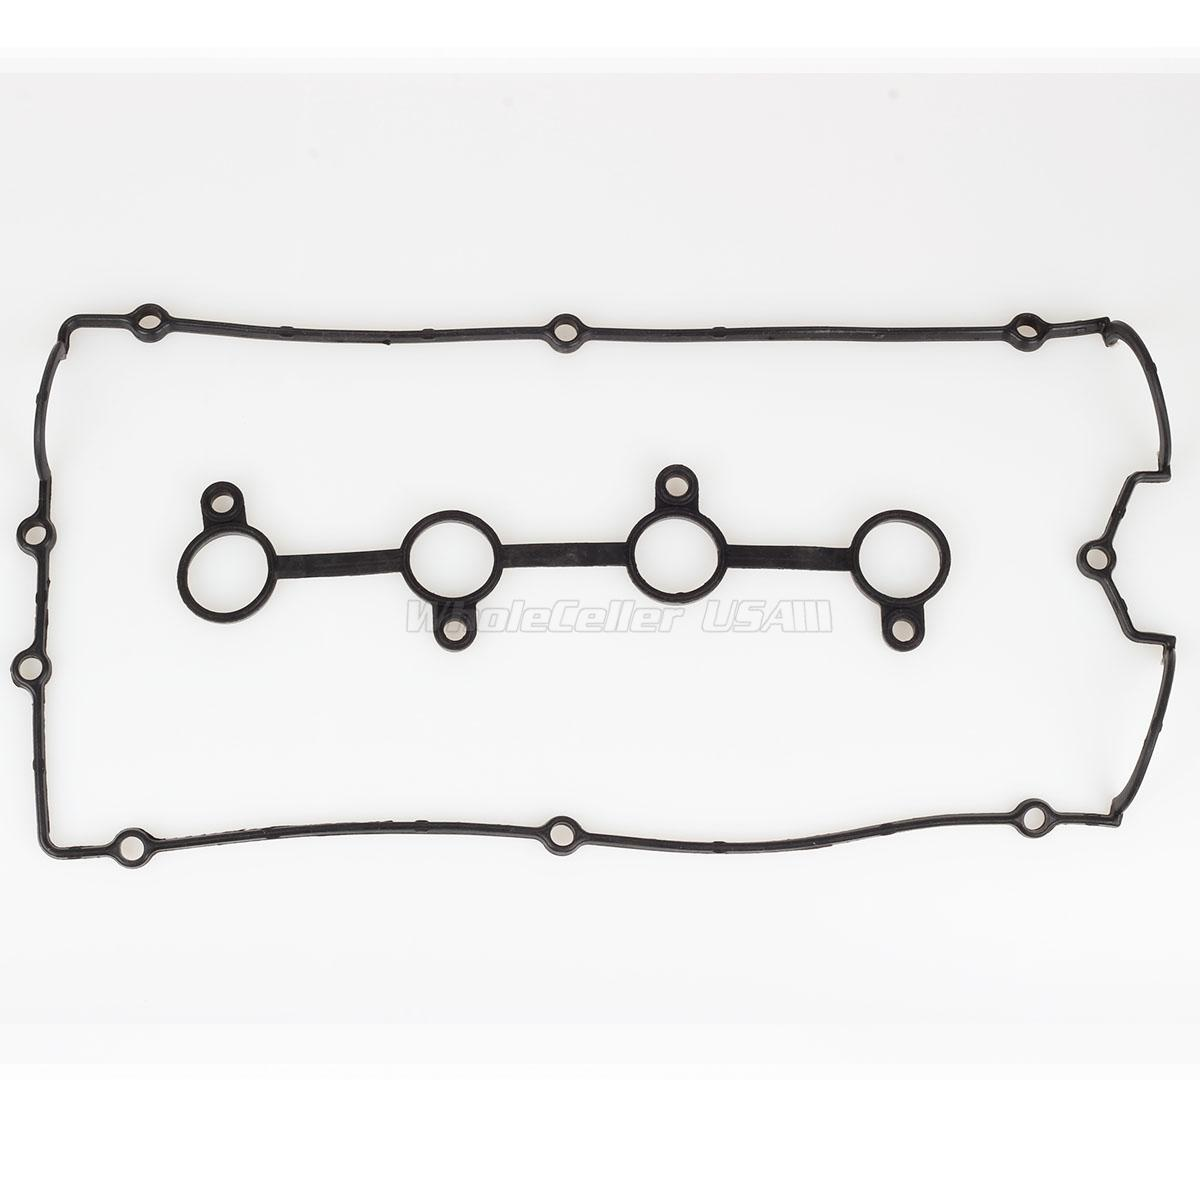 Engine Valve Cover Gasket Set Fits 99 06 Hyundai Santa Fe